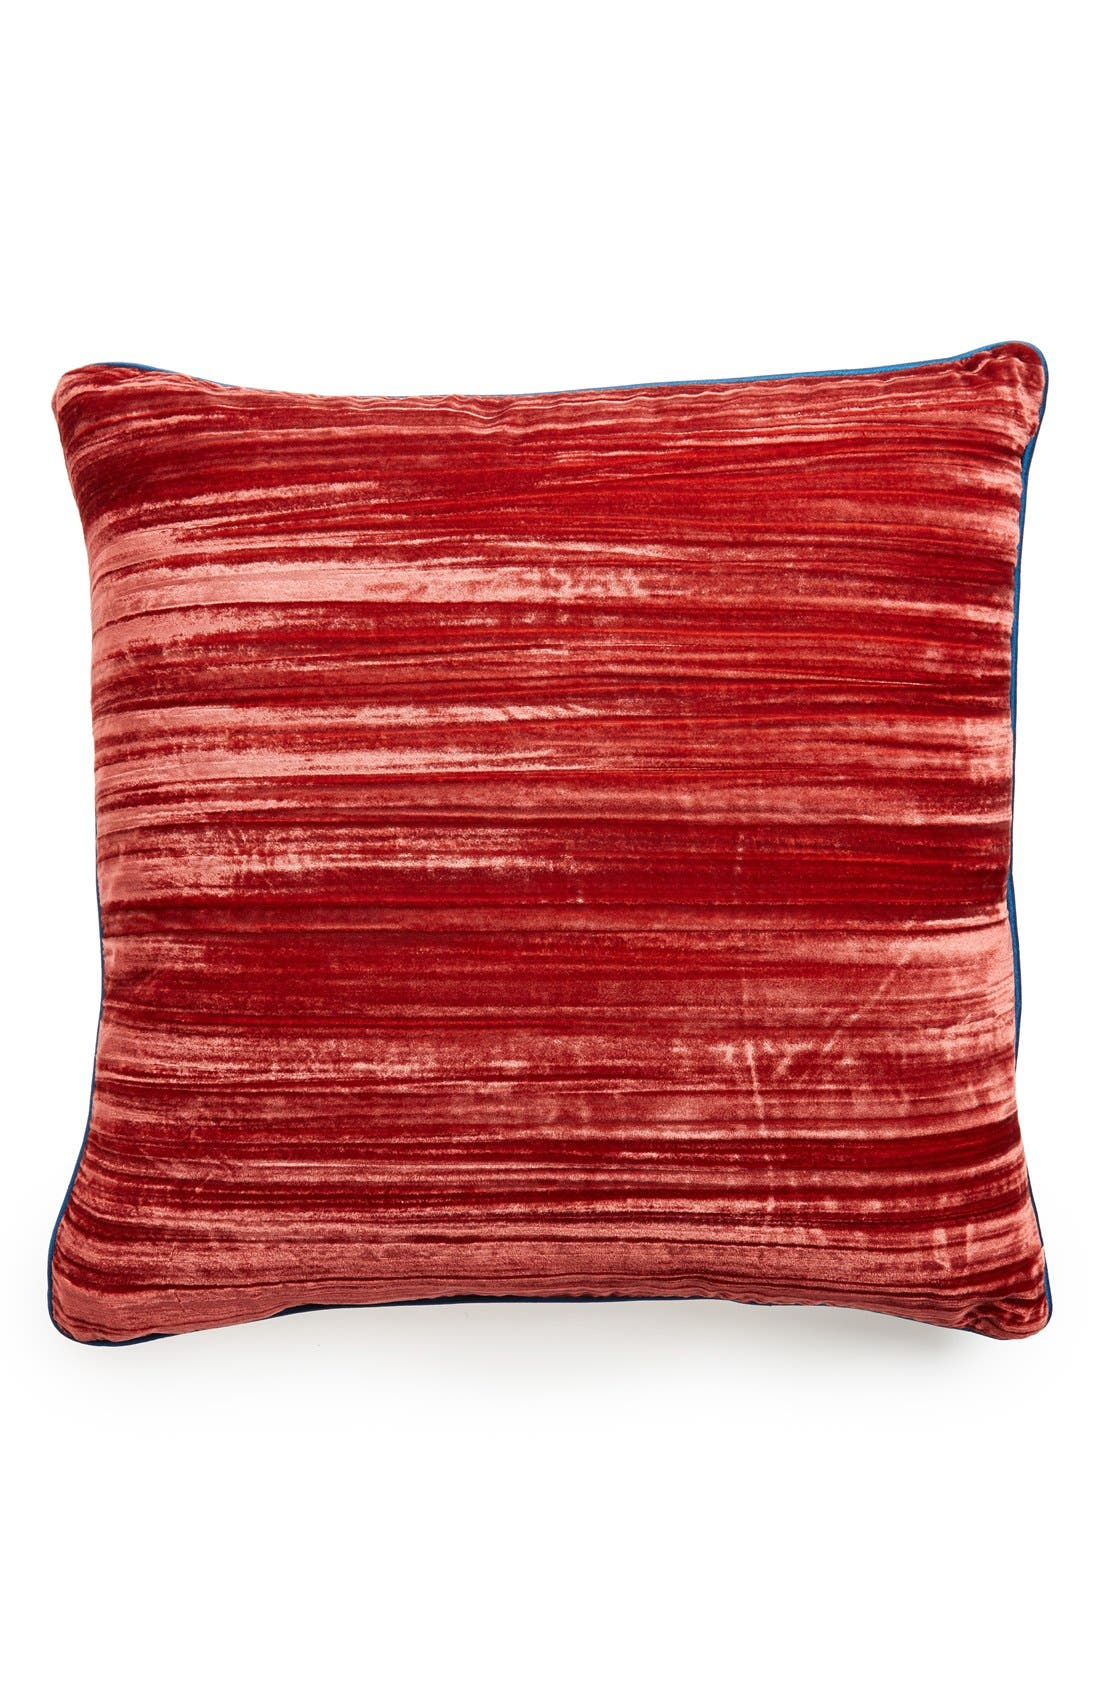 Alternate Image 1 Selected - Tracy Porter® For Poetic Wanderlust® 'Coral' Velvet Pillow